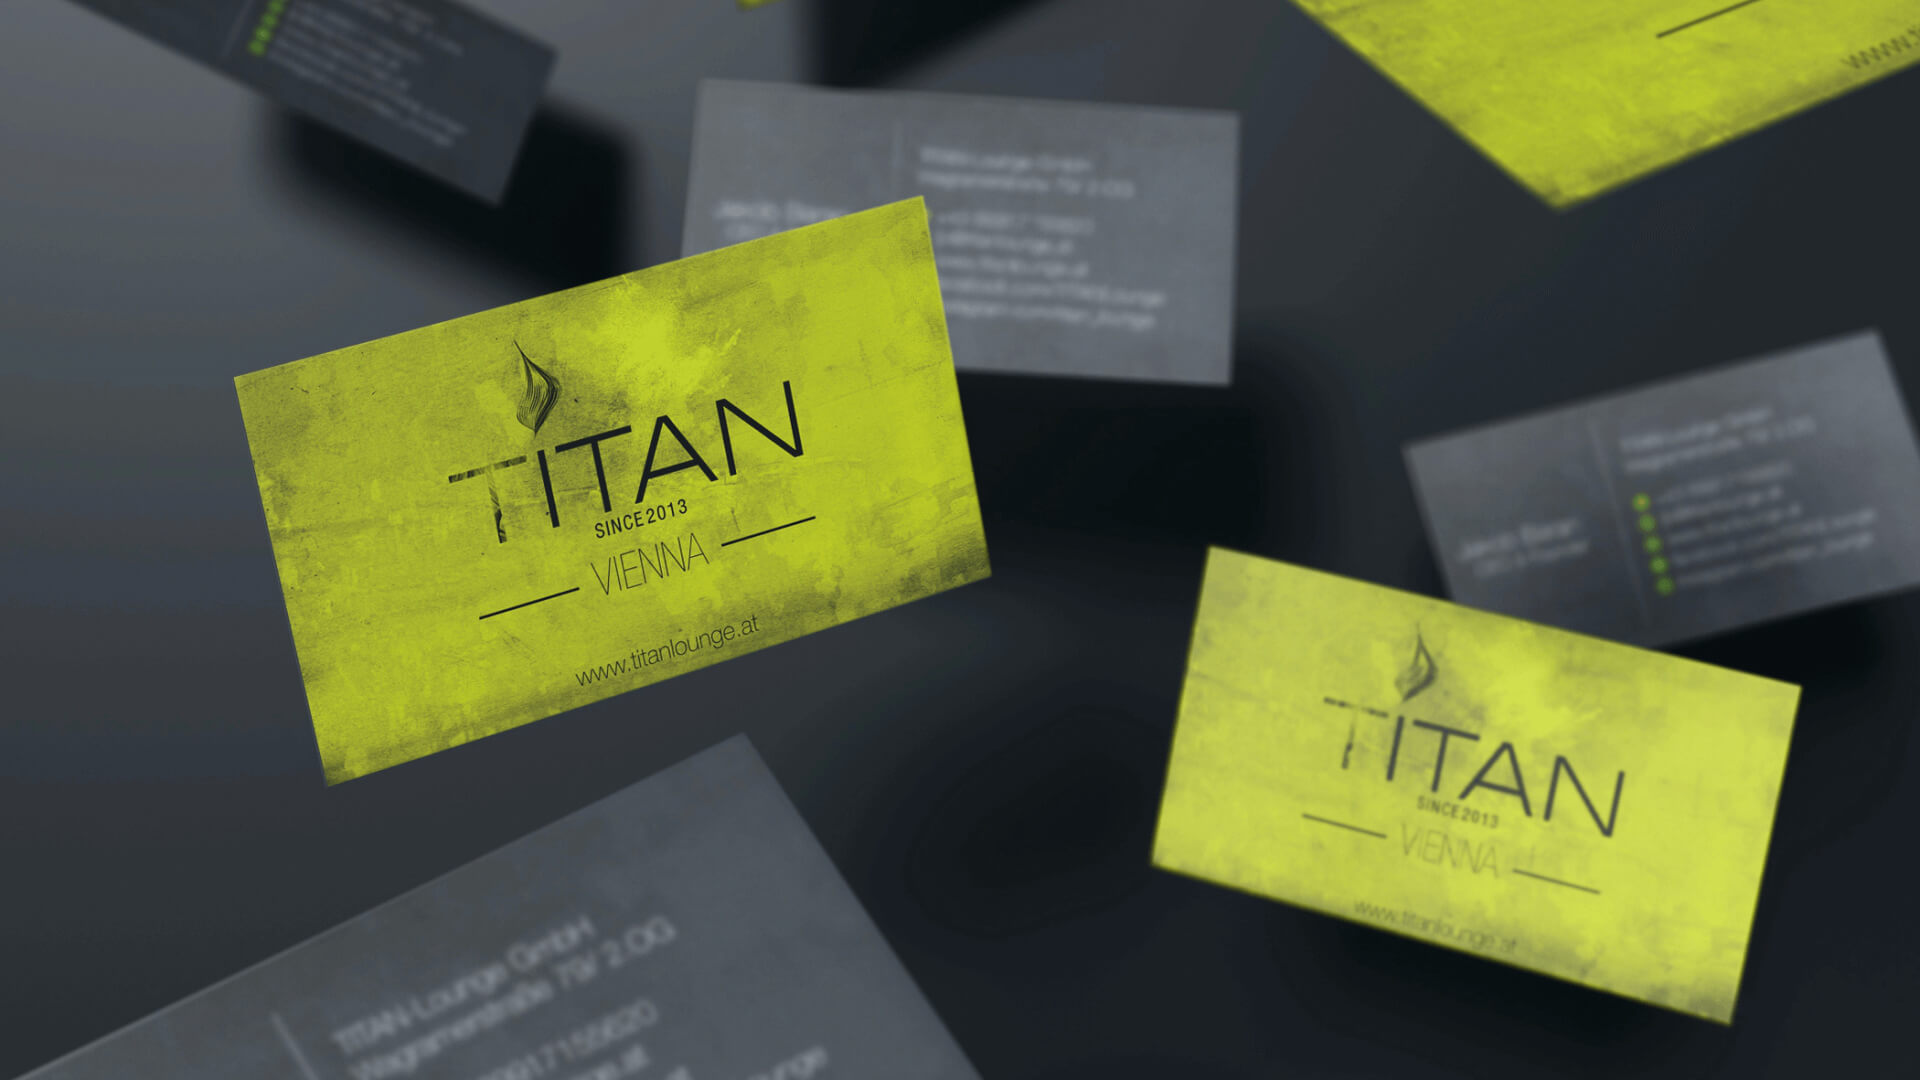 THE TITAN LOUNGE